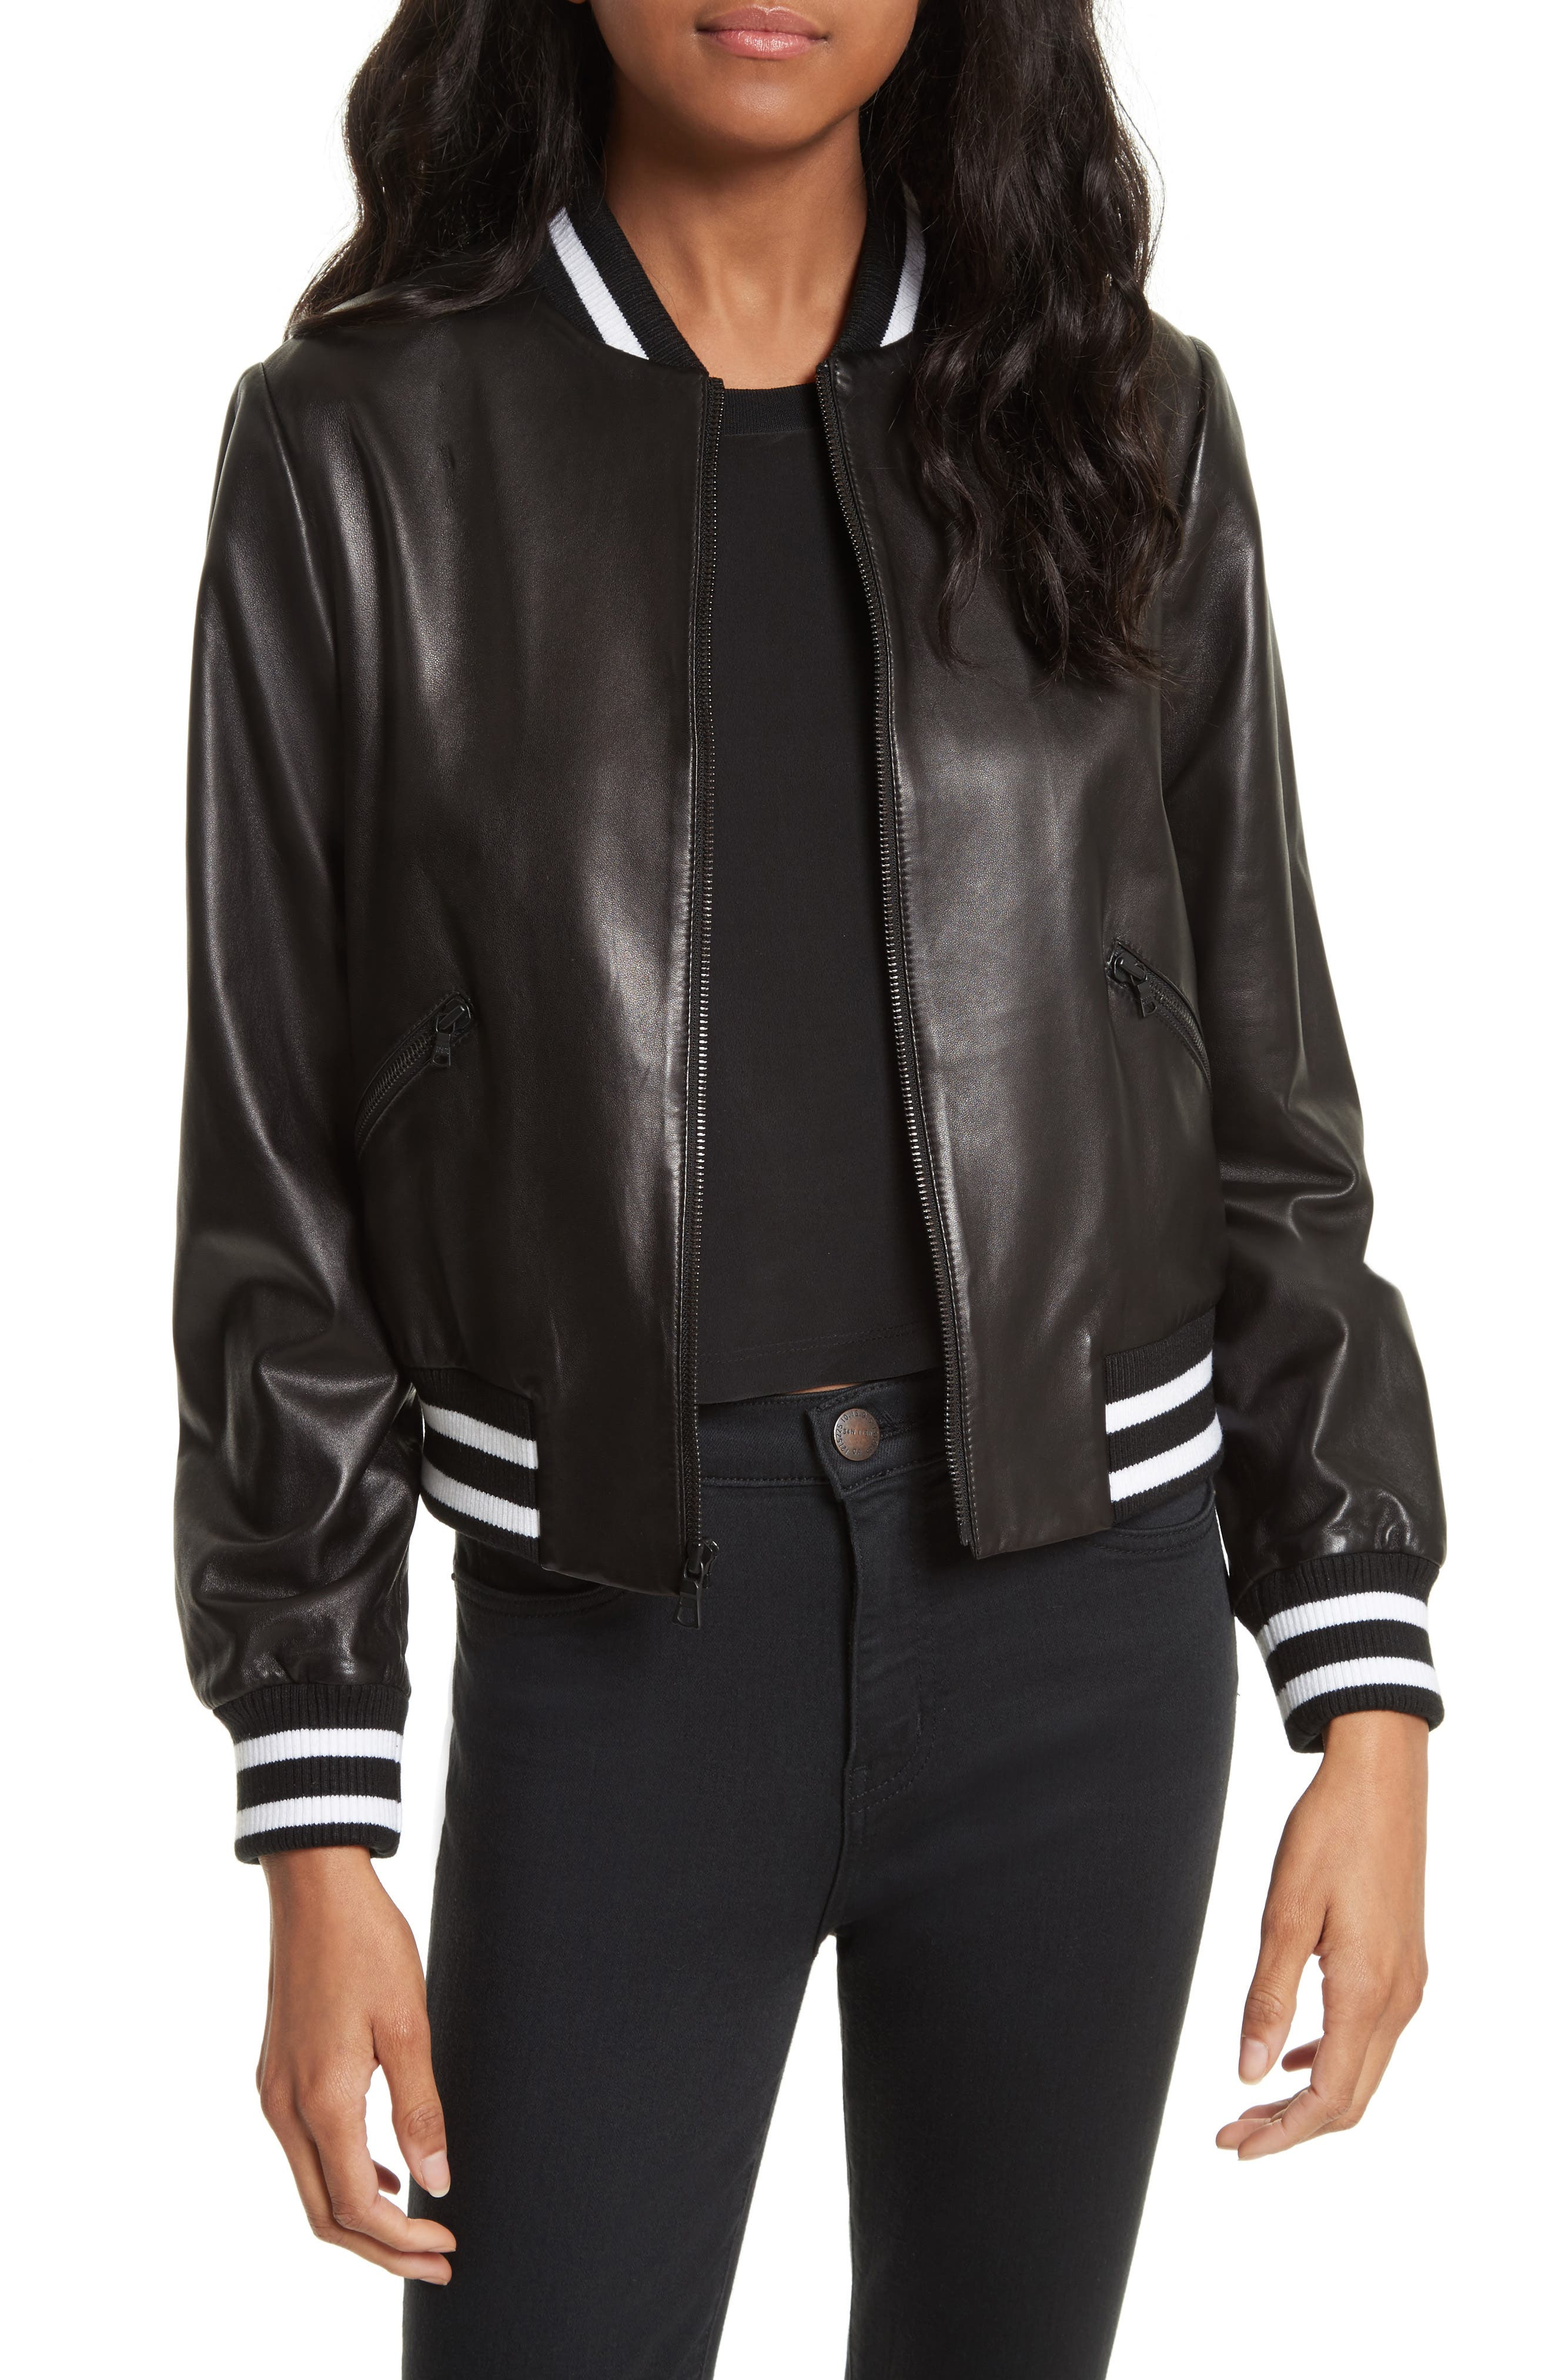 Demia Embellished Crop Leather Bomber Jacket,                             Main thumbnail 1, color,                             001